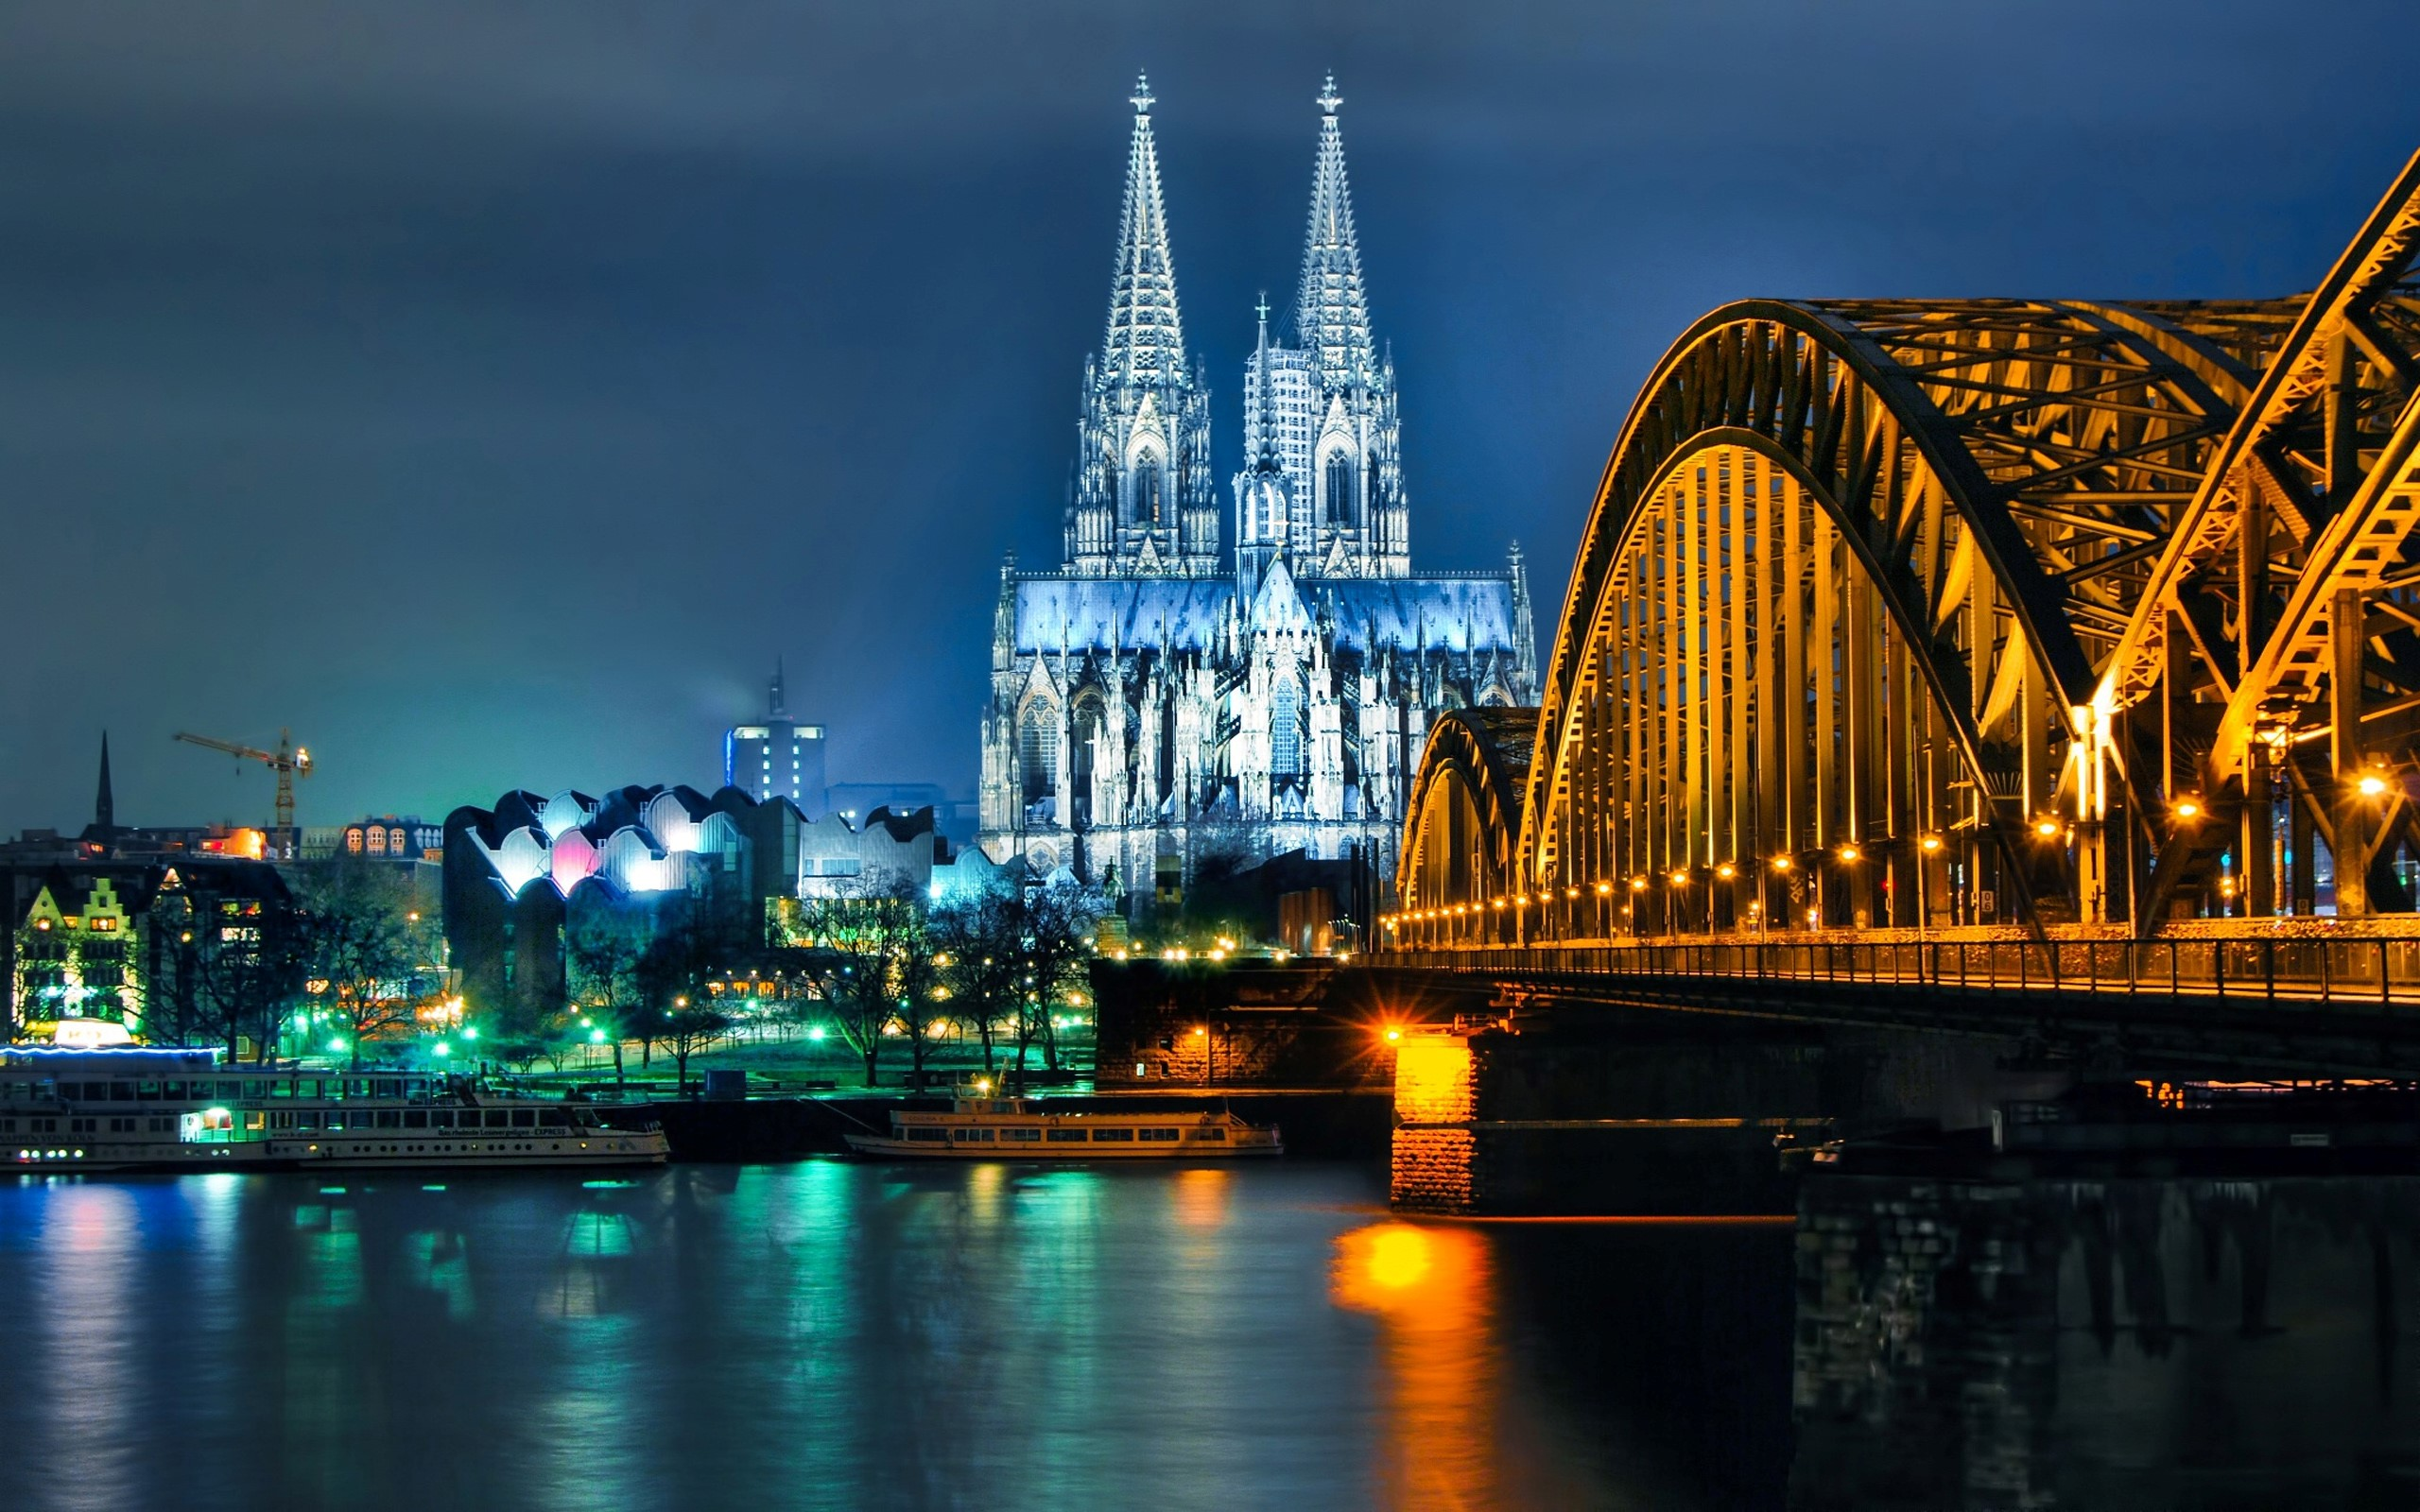 Cologne Cathedral in City Cologne of Germany Wallpaper HD Wallpapers 2560x1600